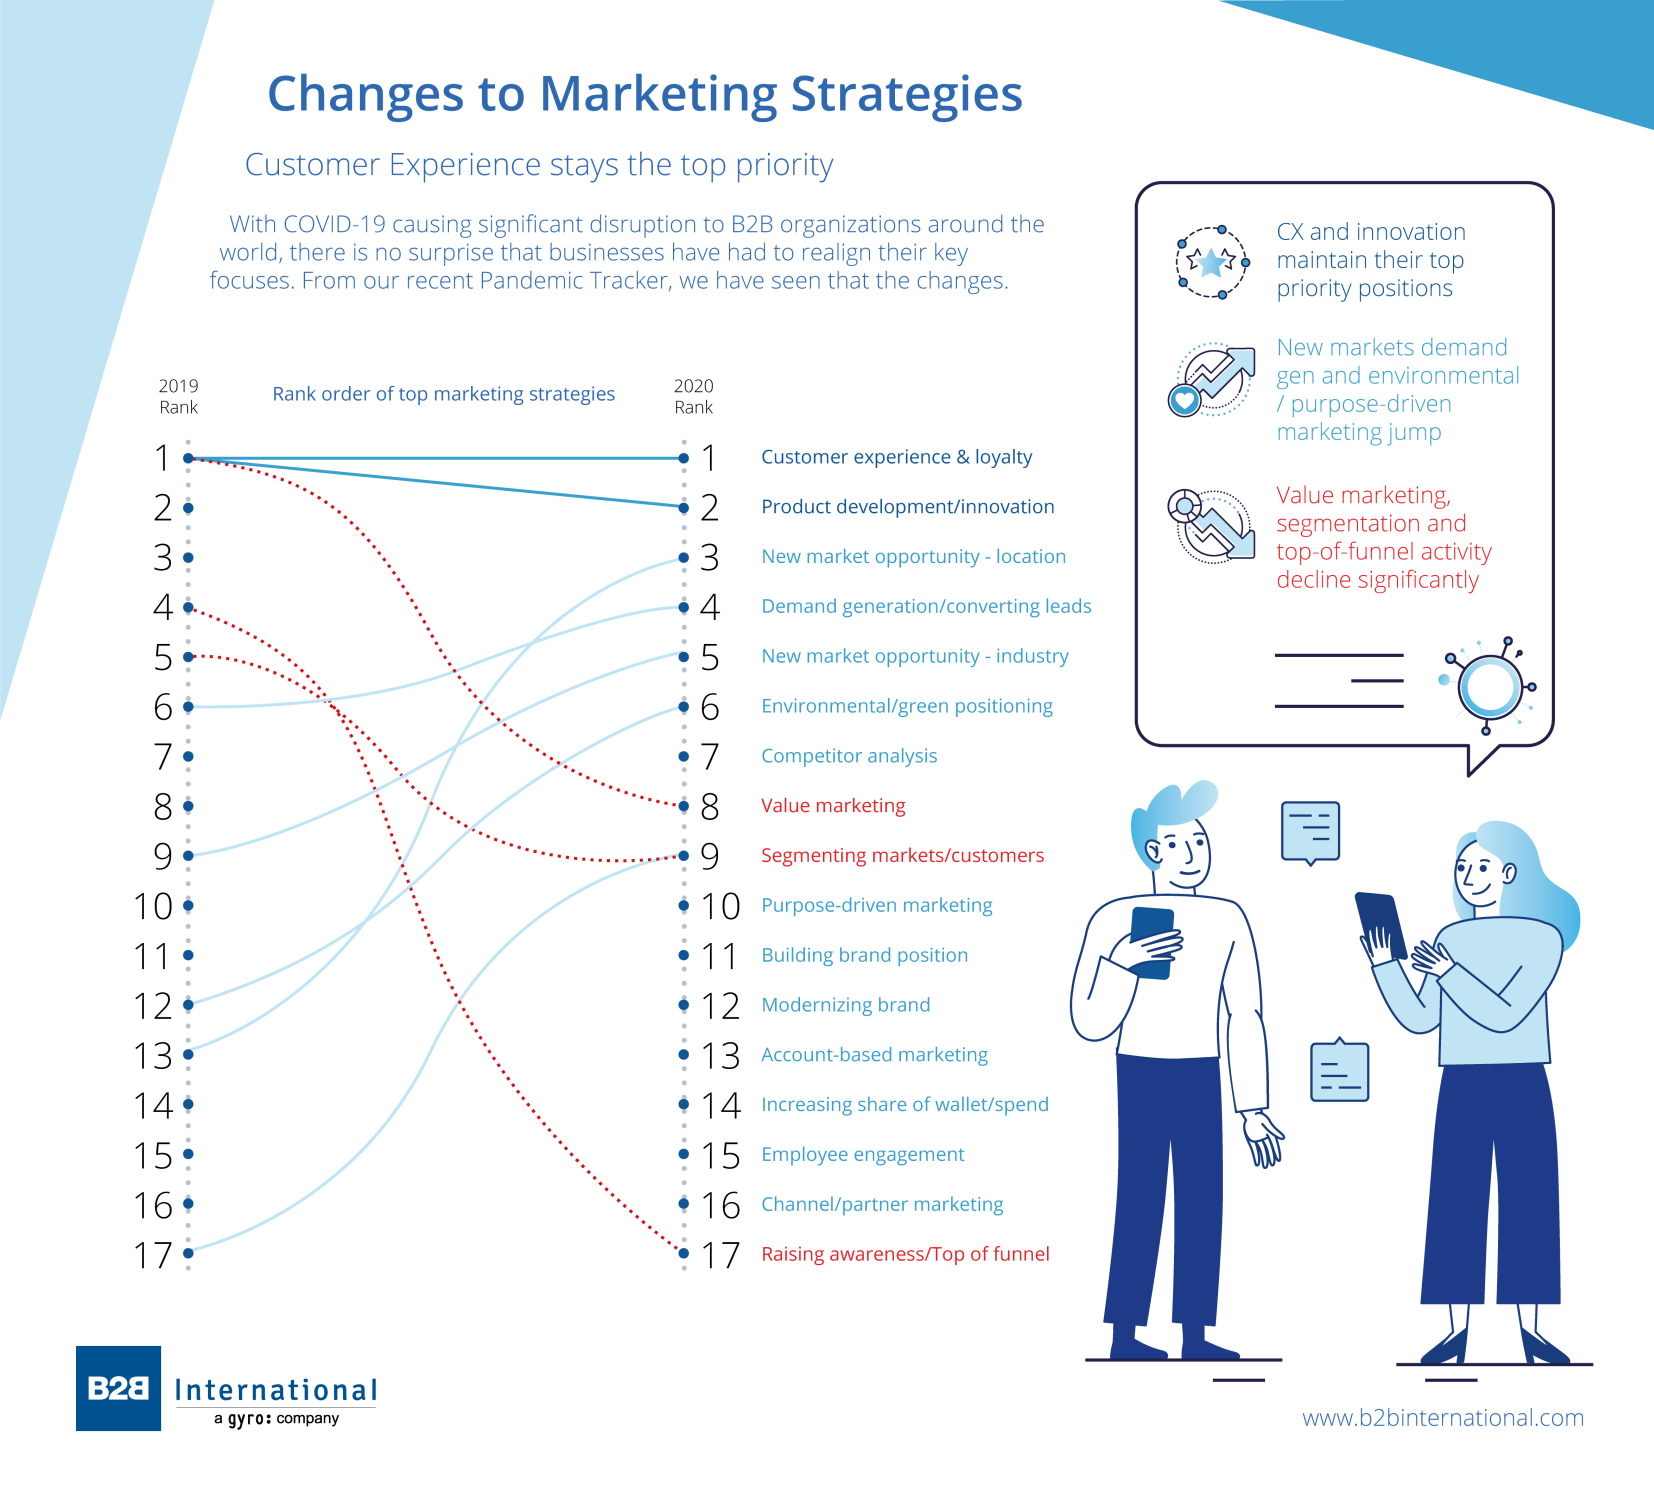 Post COVID-19 Changes to Marketing Strategies